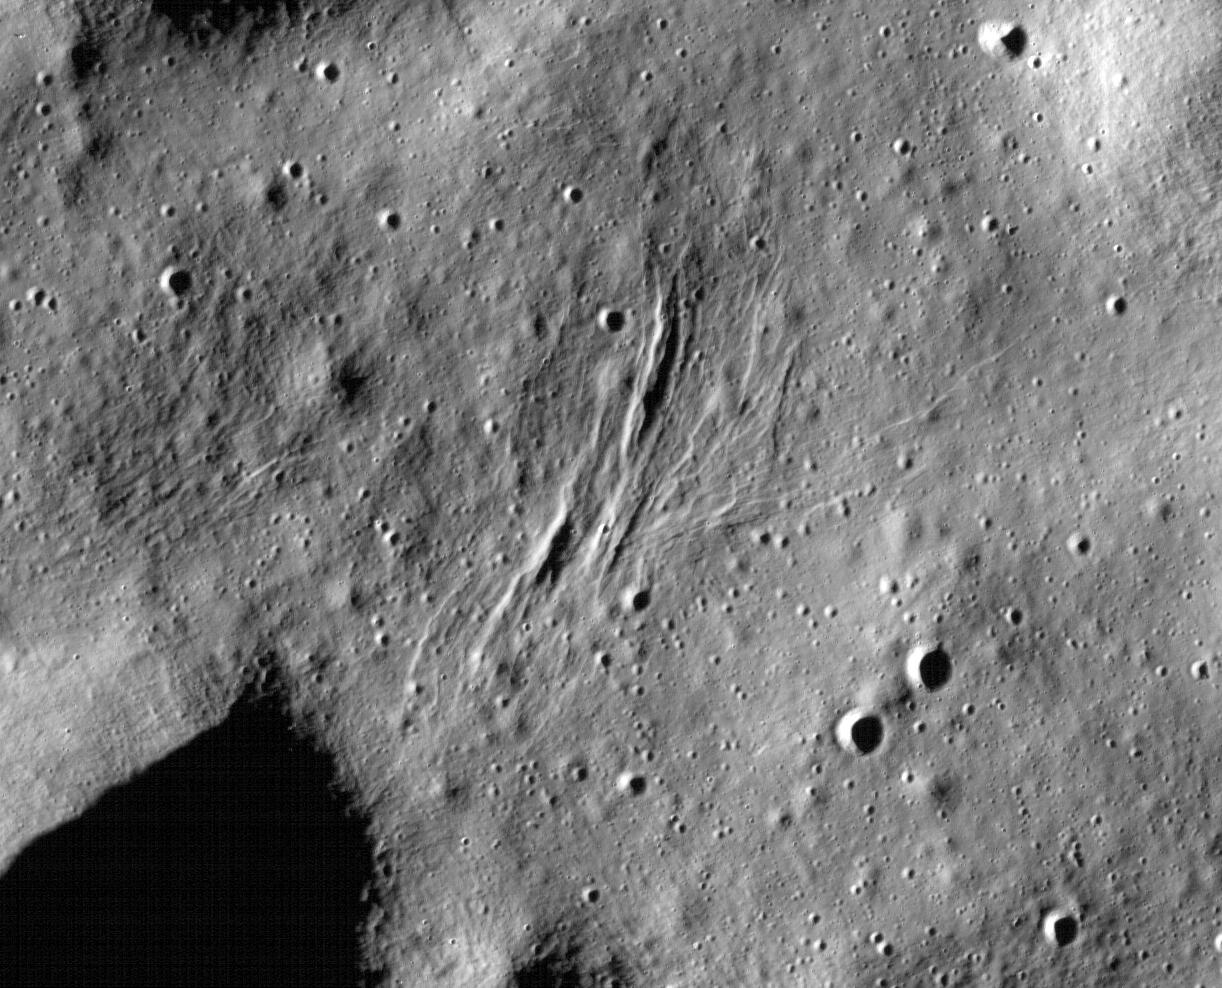 These graben - a kind of trench that is formed as a surface expands - were imaged near a region of the Moon called Mare Frigoris by NASAs Lunar Reconnaissance Orbiter (LRO).